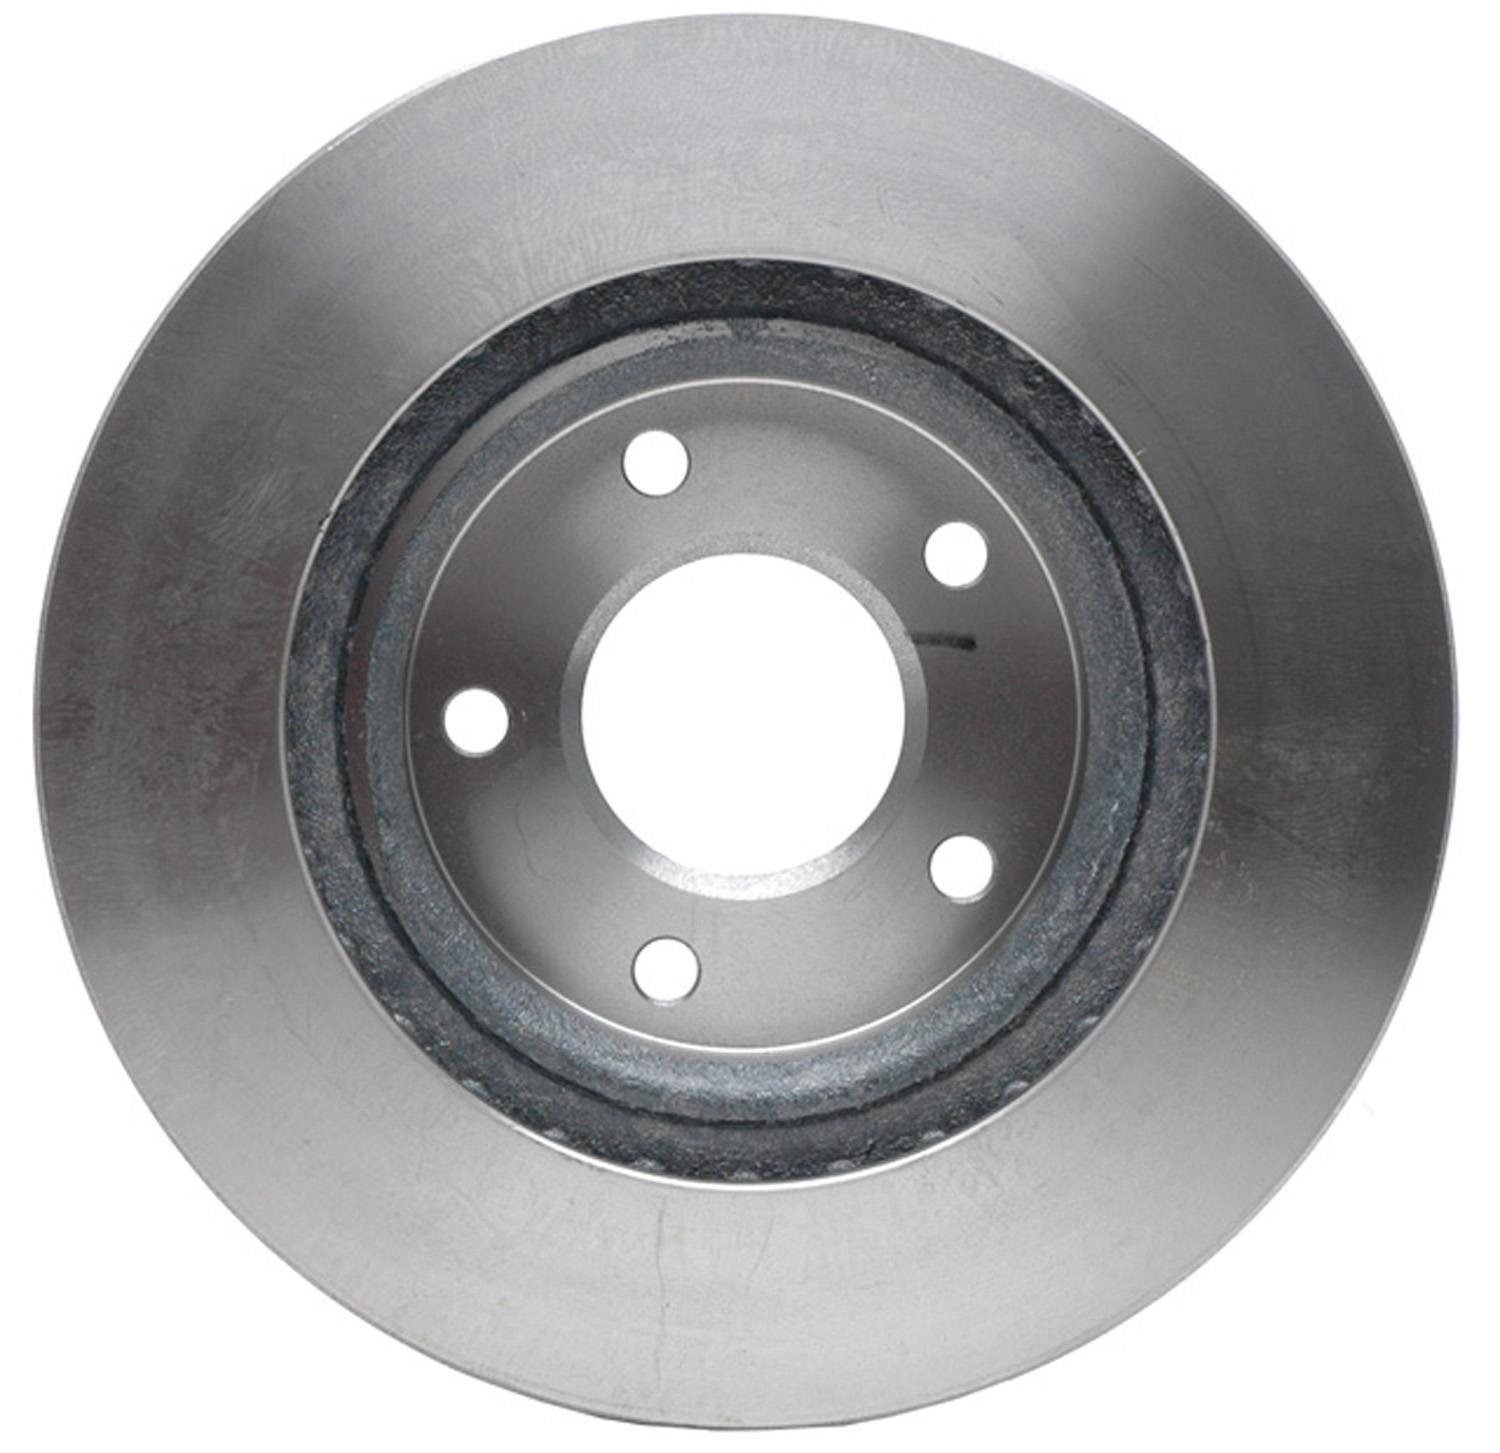 ACDELCO PROFESSIONAL BRAKES - Disc Brake Rotor (Front) - ADU 18A2446